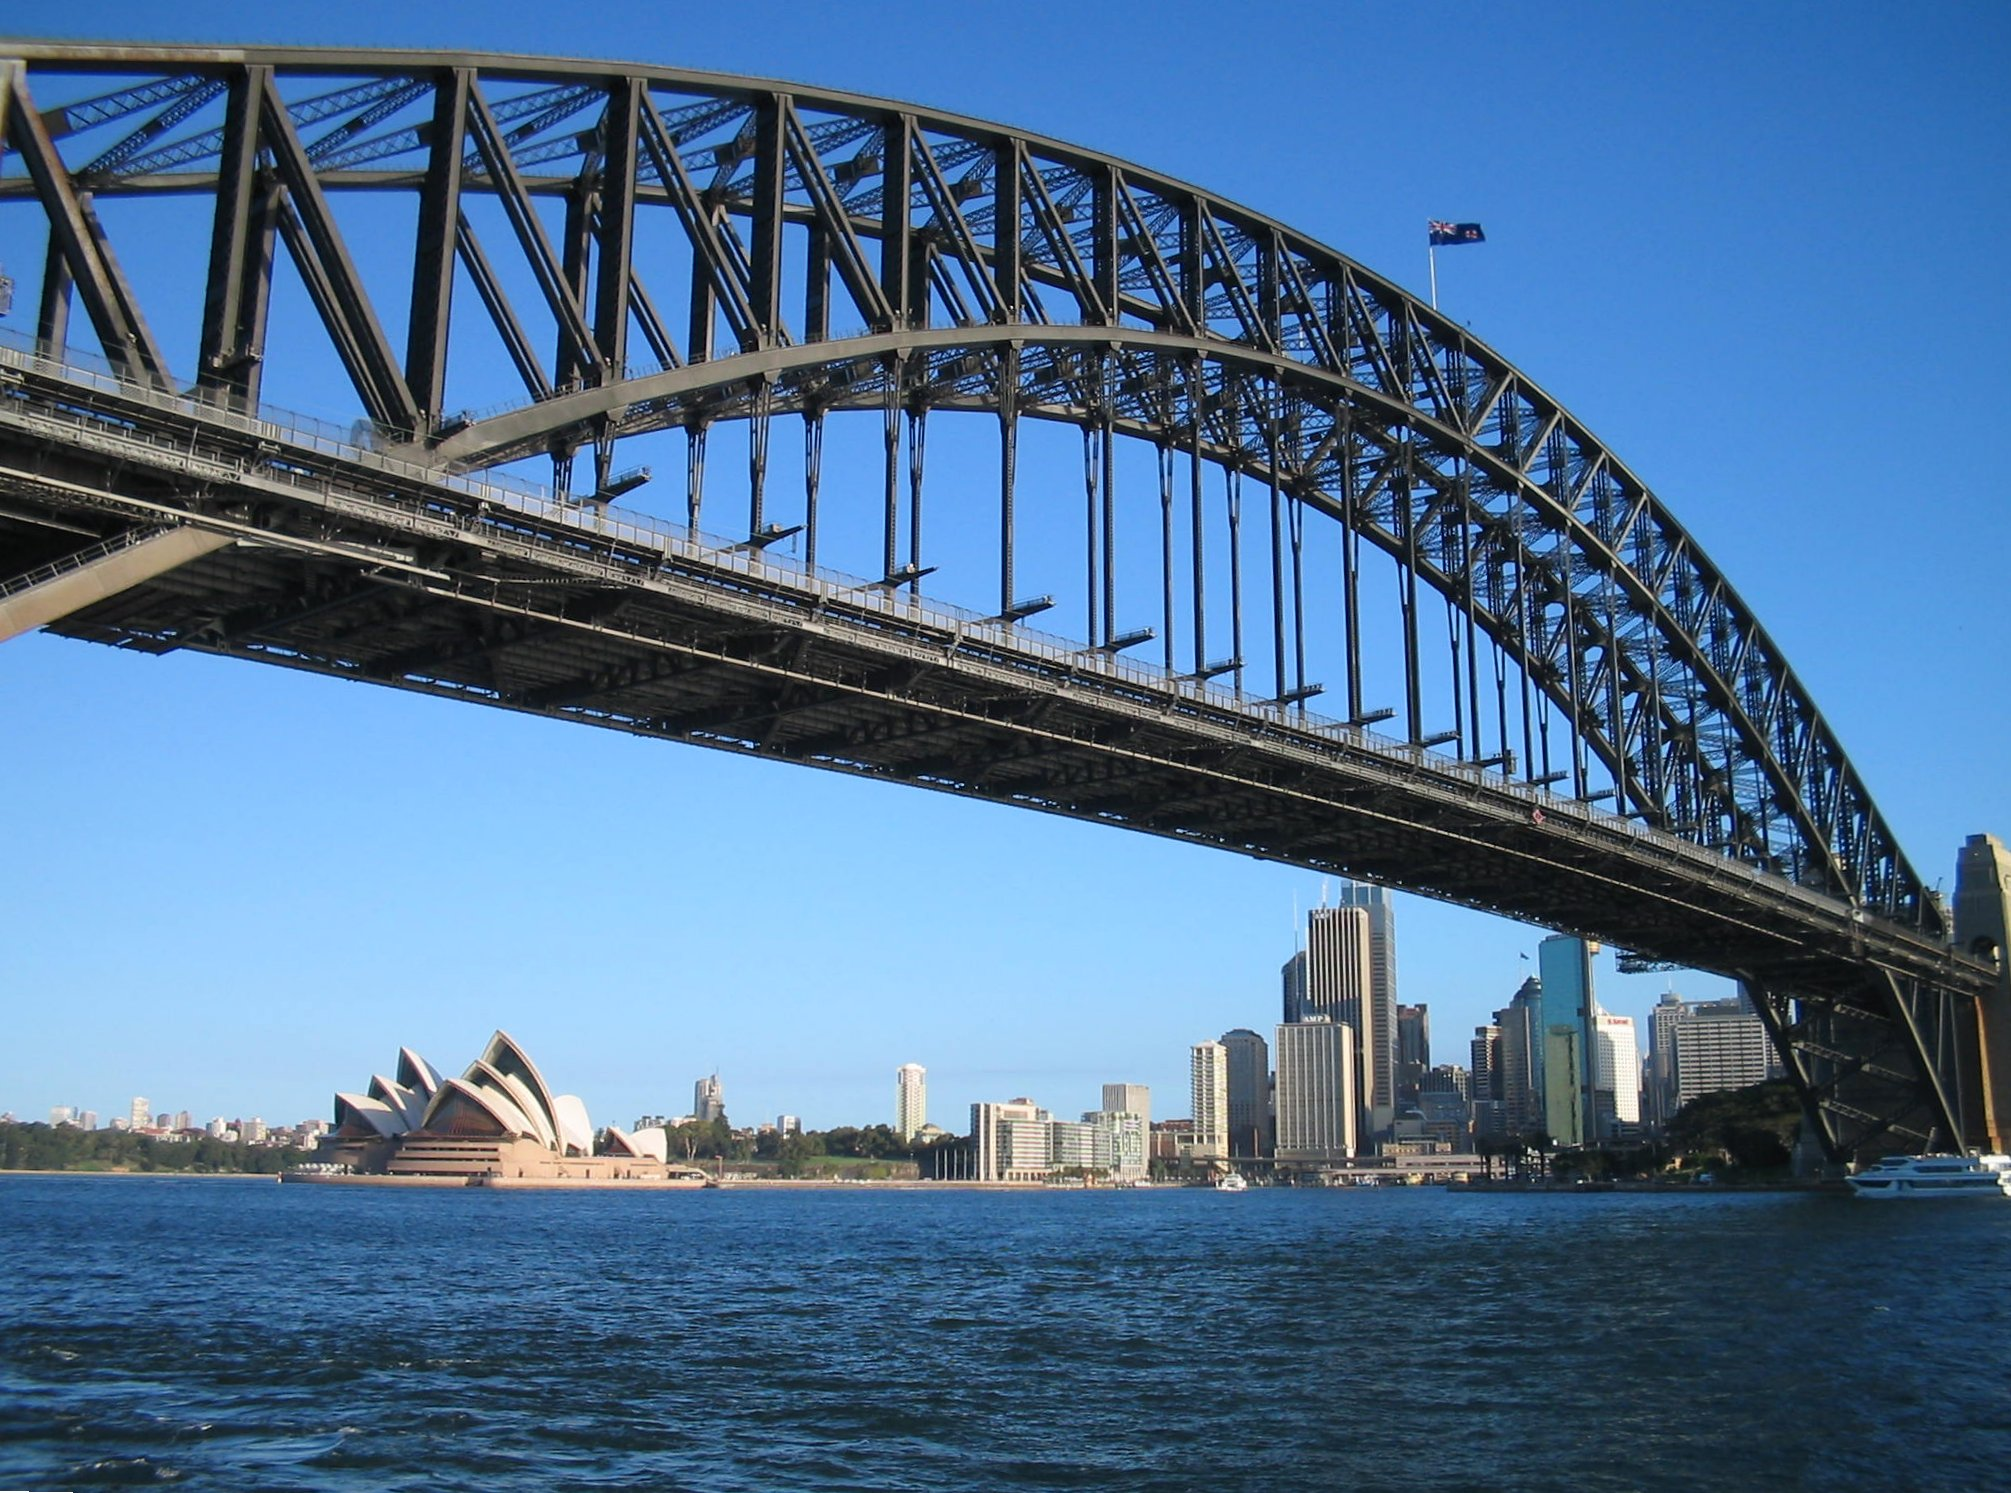 Sydney Harbour Bridge by https://commons.wikimedia.org/wiki/User:Pau